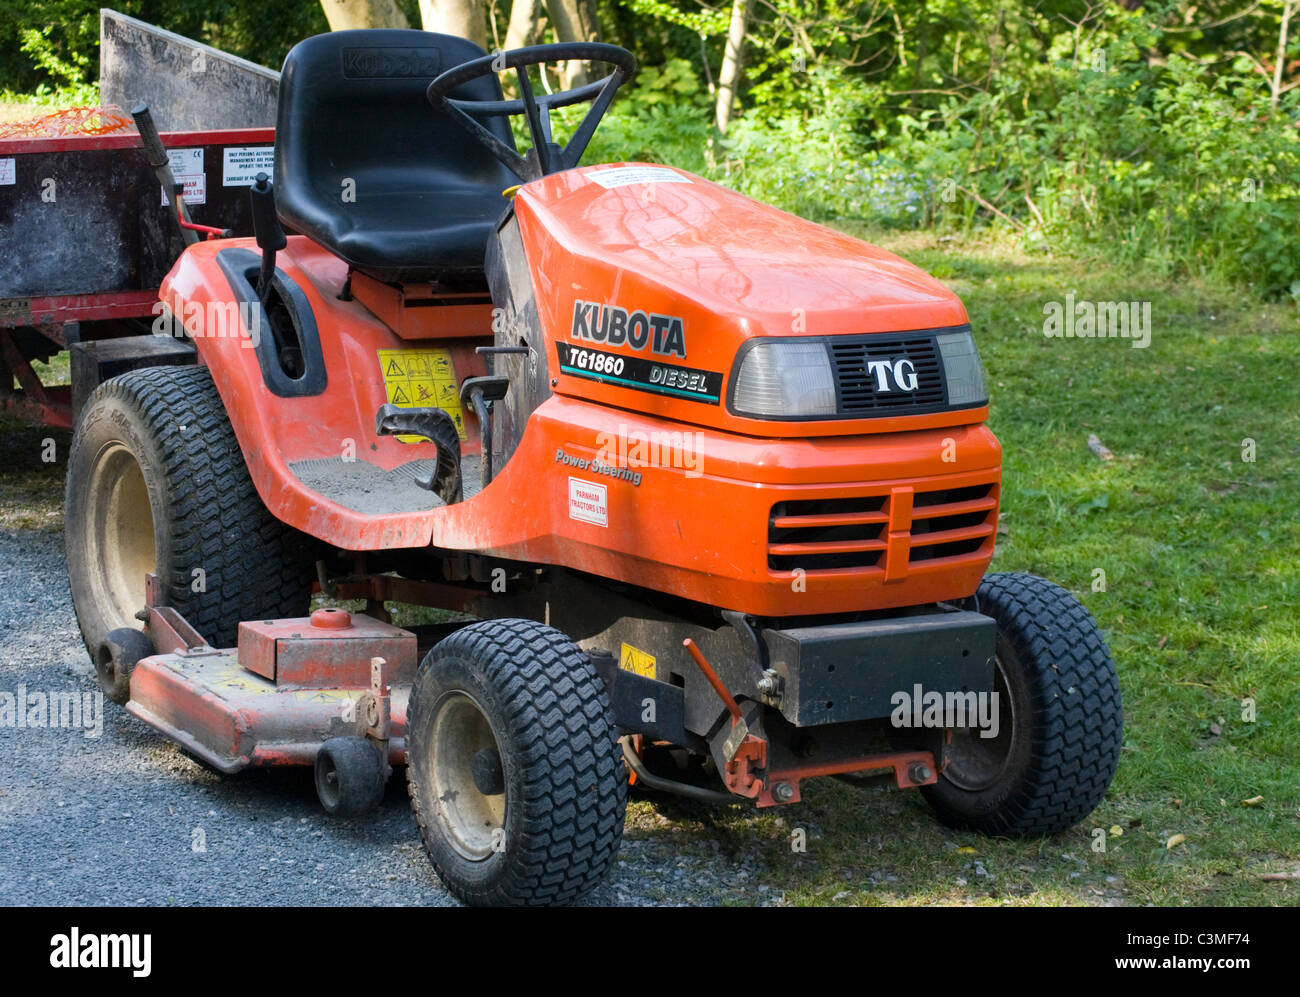 Kubota Tg Lawn Tractor Stock Photo Alamy